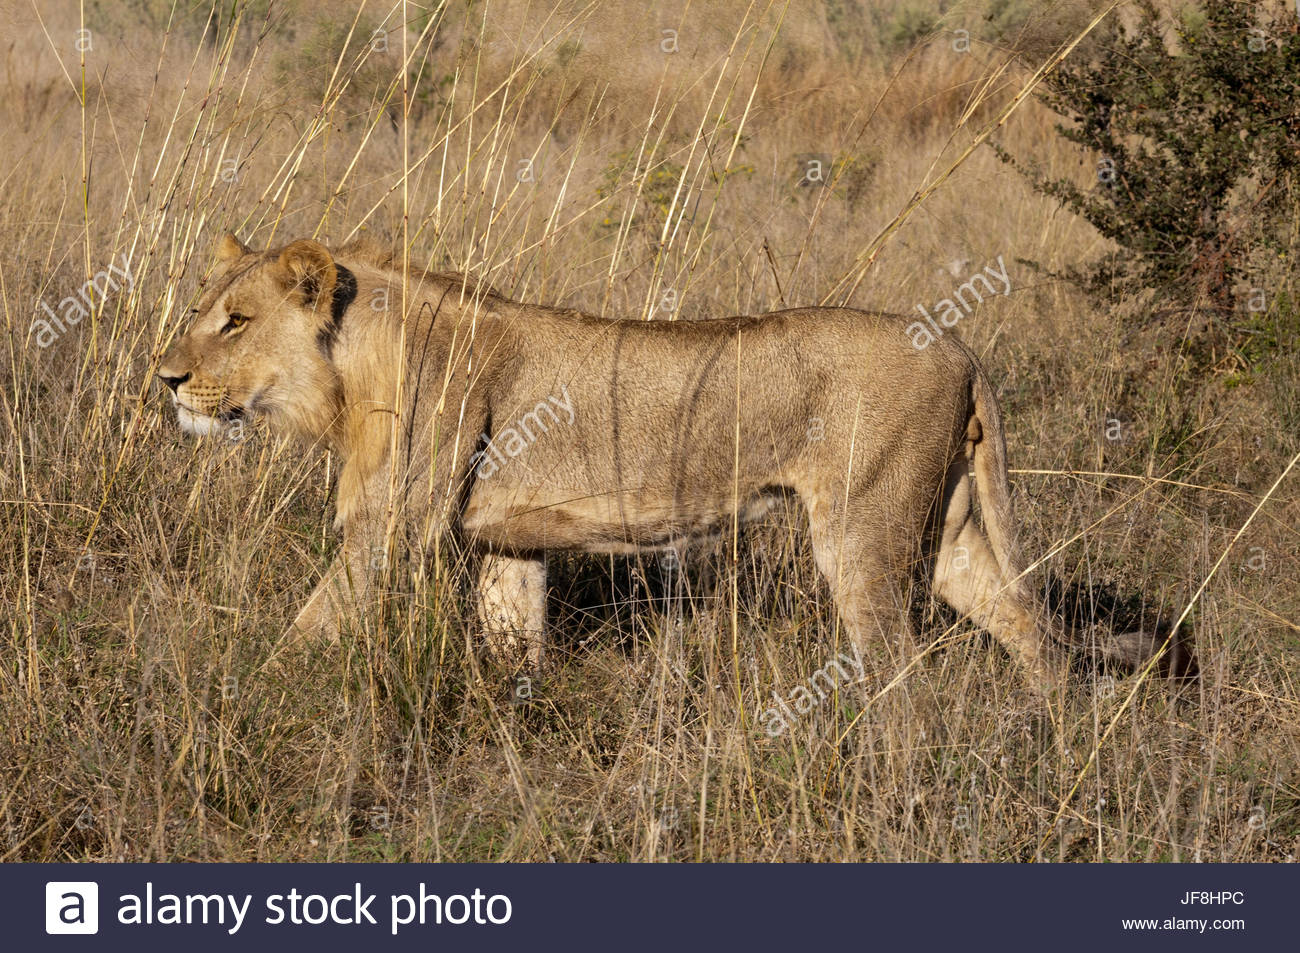 Portrait of a sub-adult male lion, Panthera leo, walking in tall grass. - Stock Image